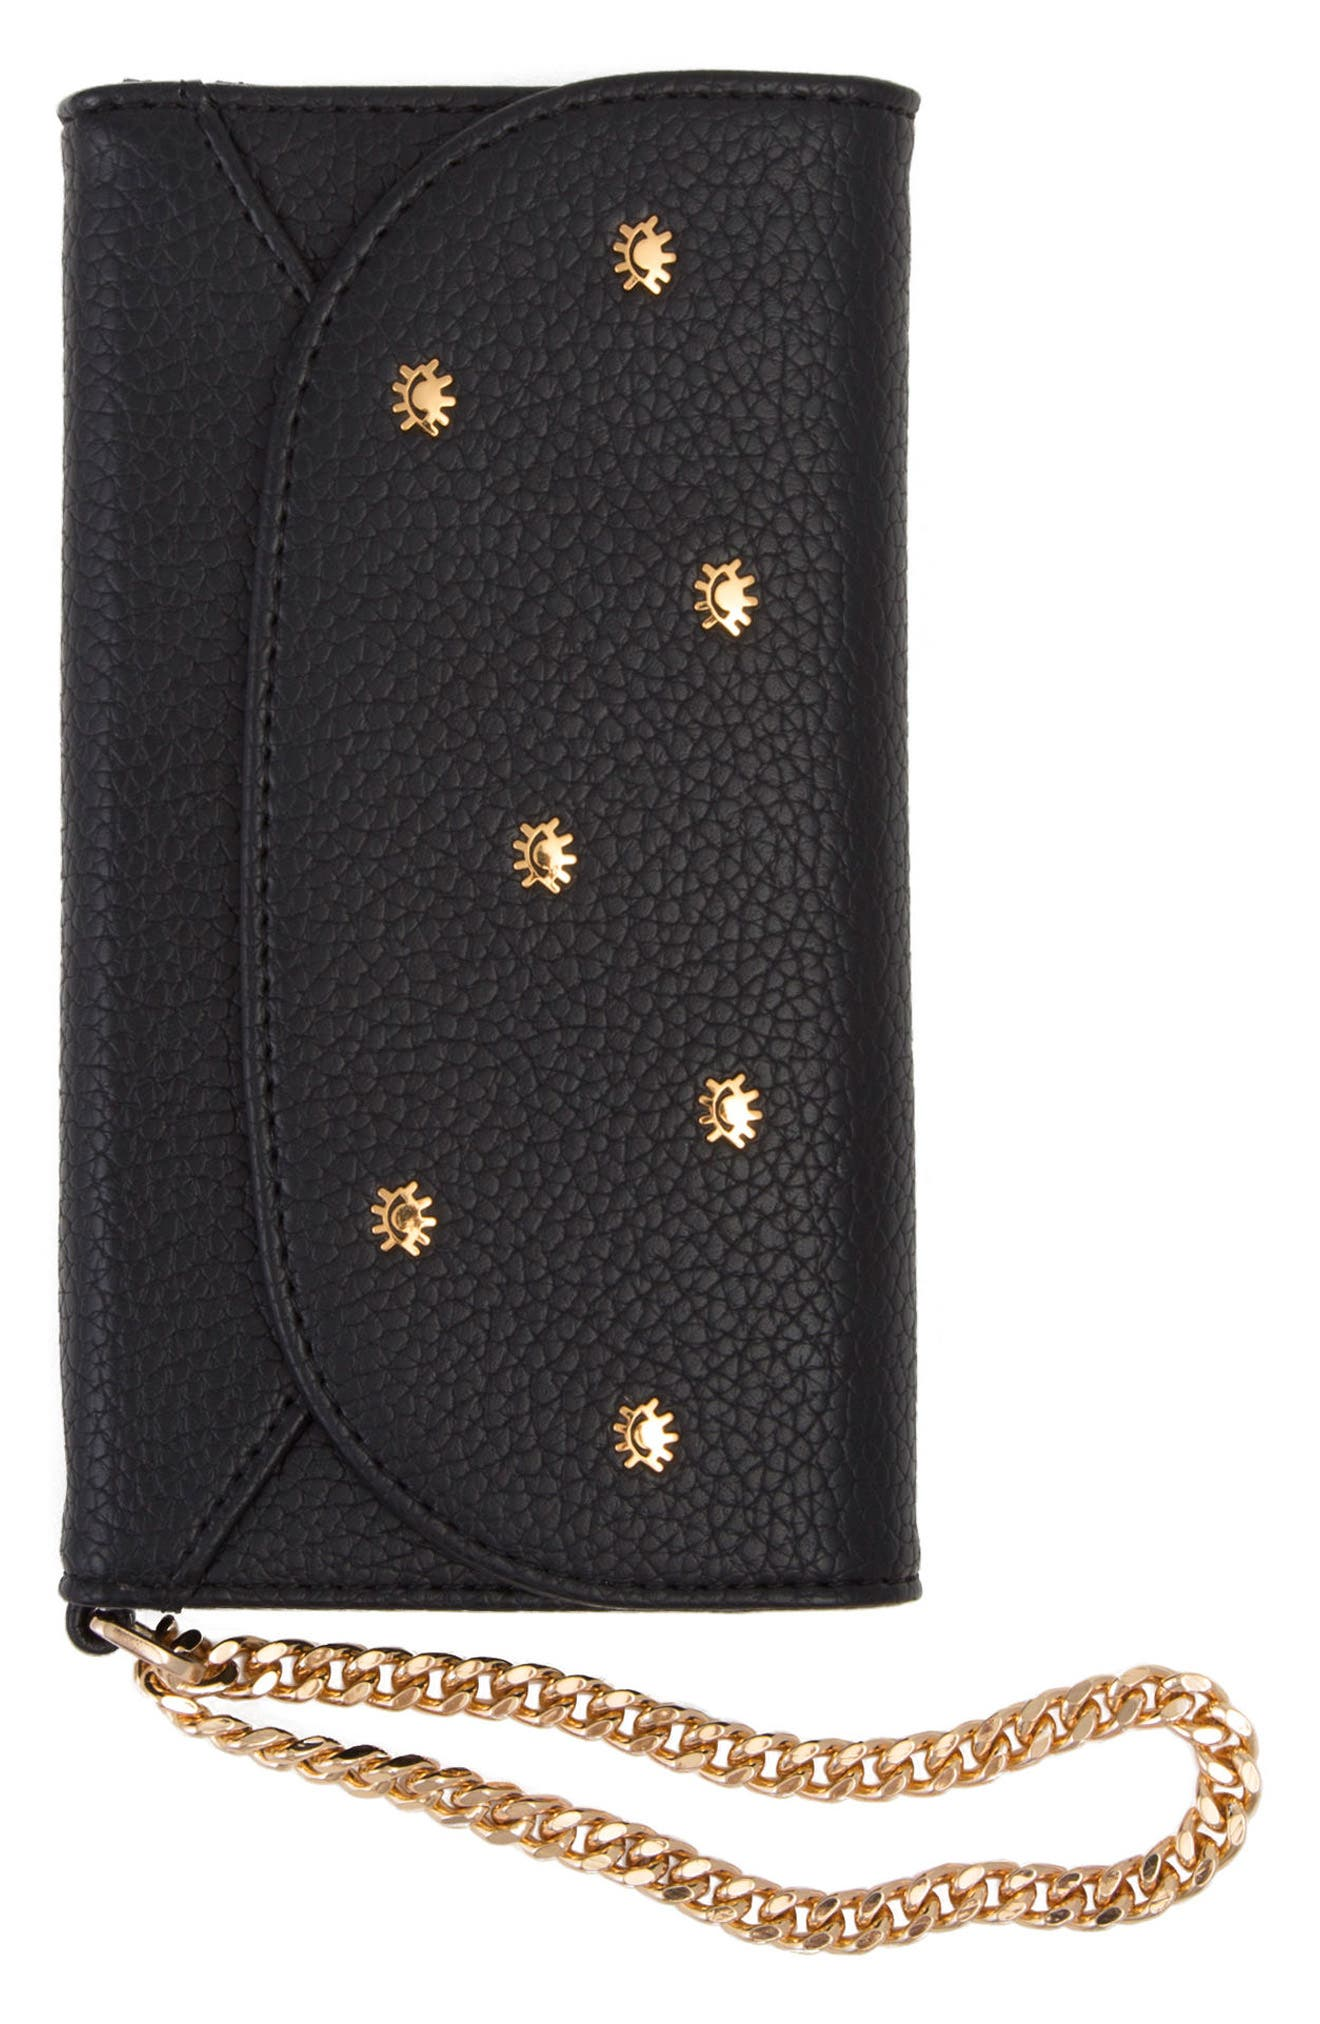 Sonix Cosmic Stud iPhone X Faux Leather Wristlet